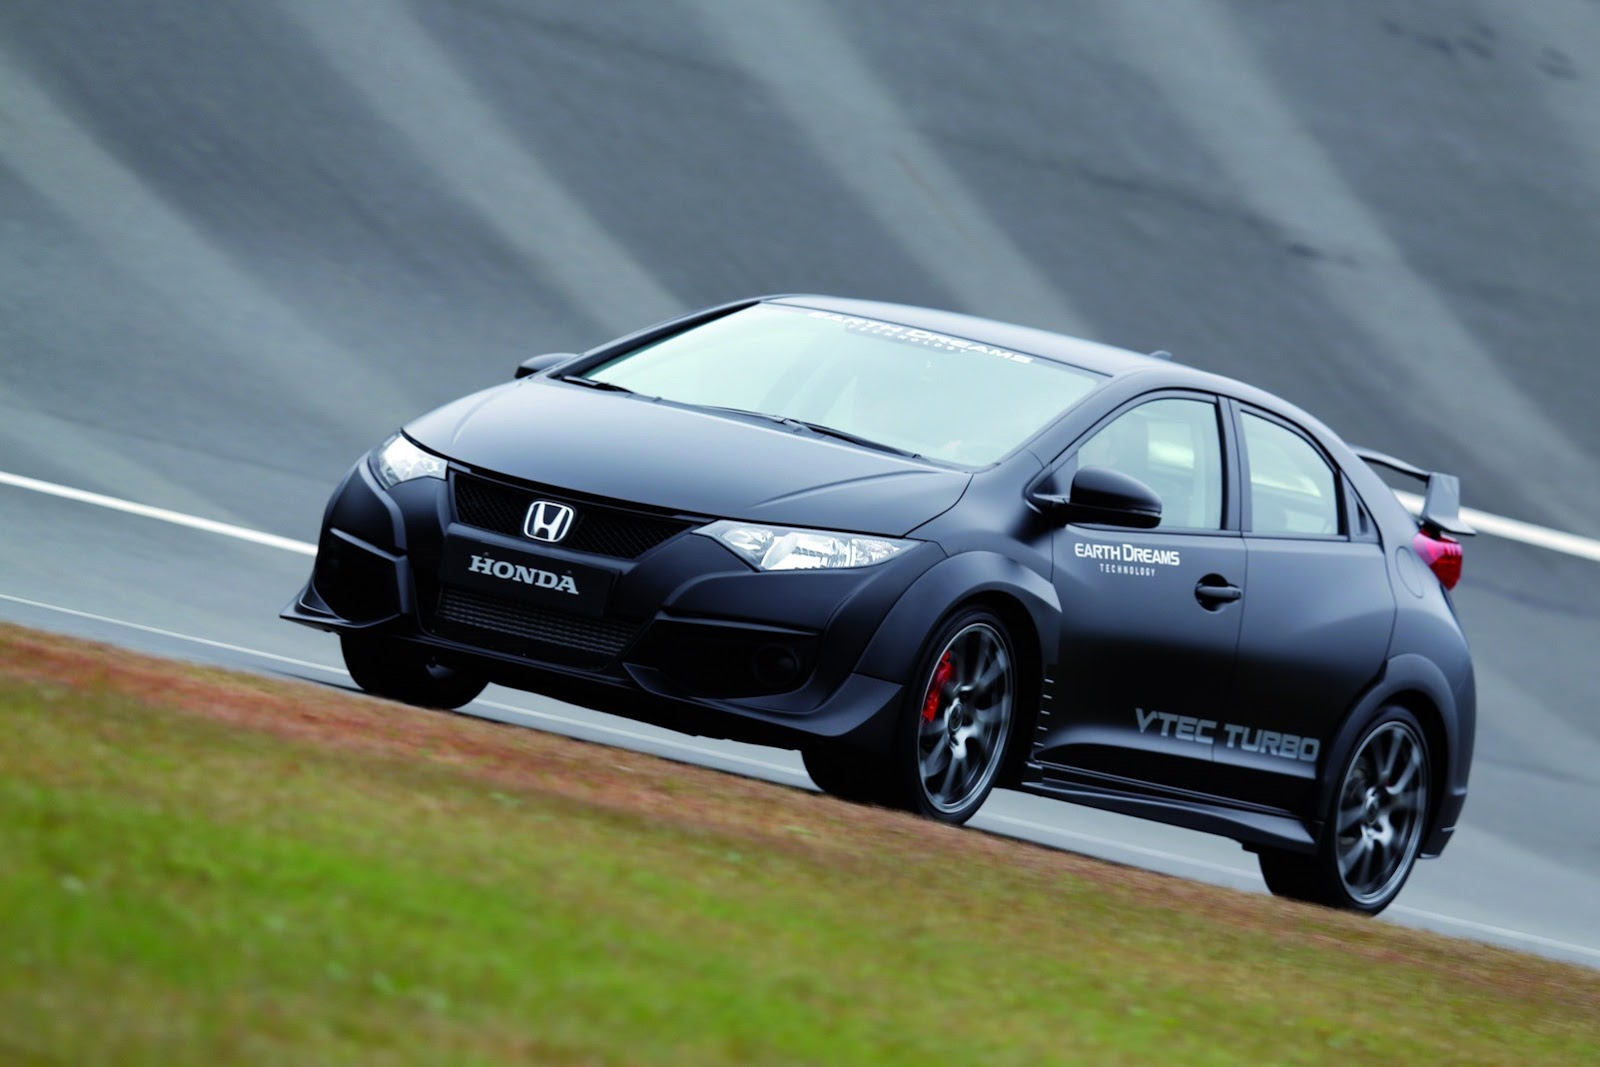 honda civic type r prototype photo gallery autocar india. Black Bedroom Furniture Sets. Home Design Ideas